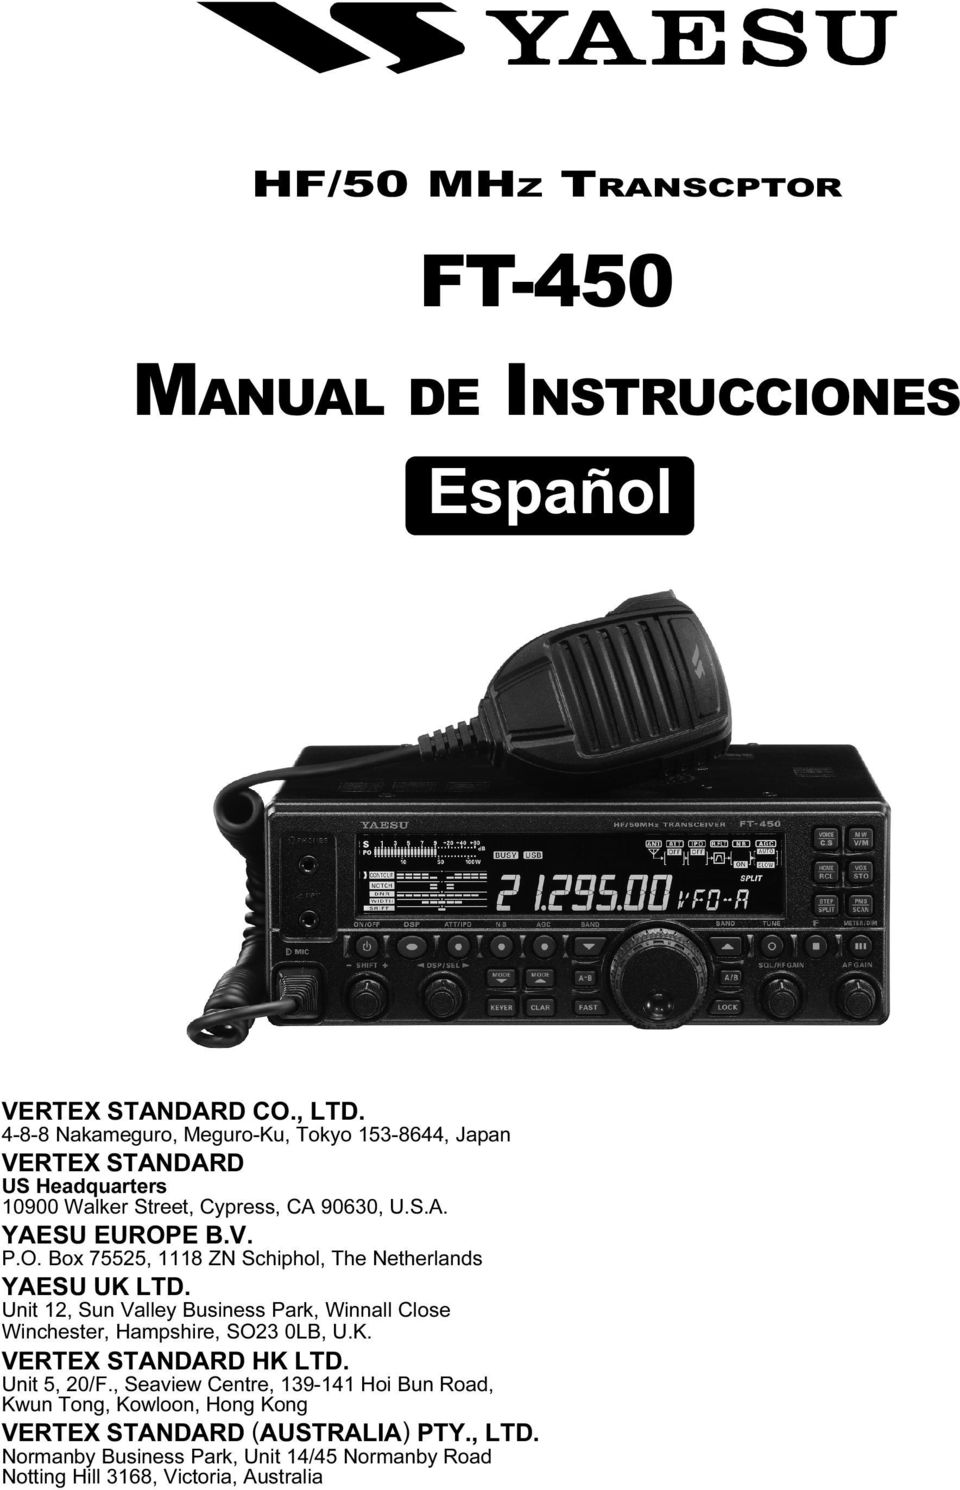 E B.V. P.O. Box 75525, 1118 ZN Schiphol, The Netherlands YAESU UK LTD. Unit 12, Sun Valley Business Park, Winnall Close Winchester, Hampshire, SO23 0LB, U.